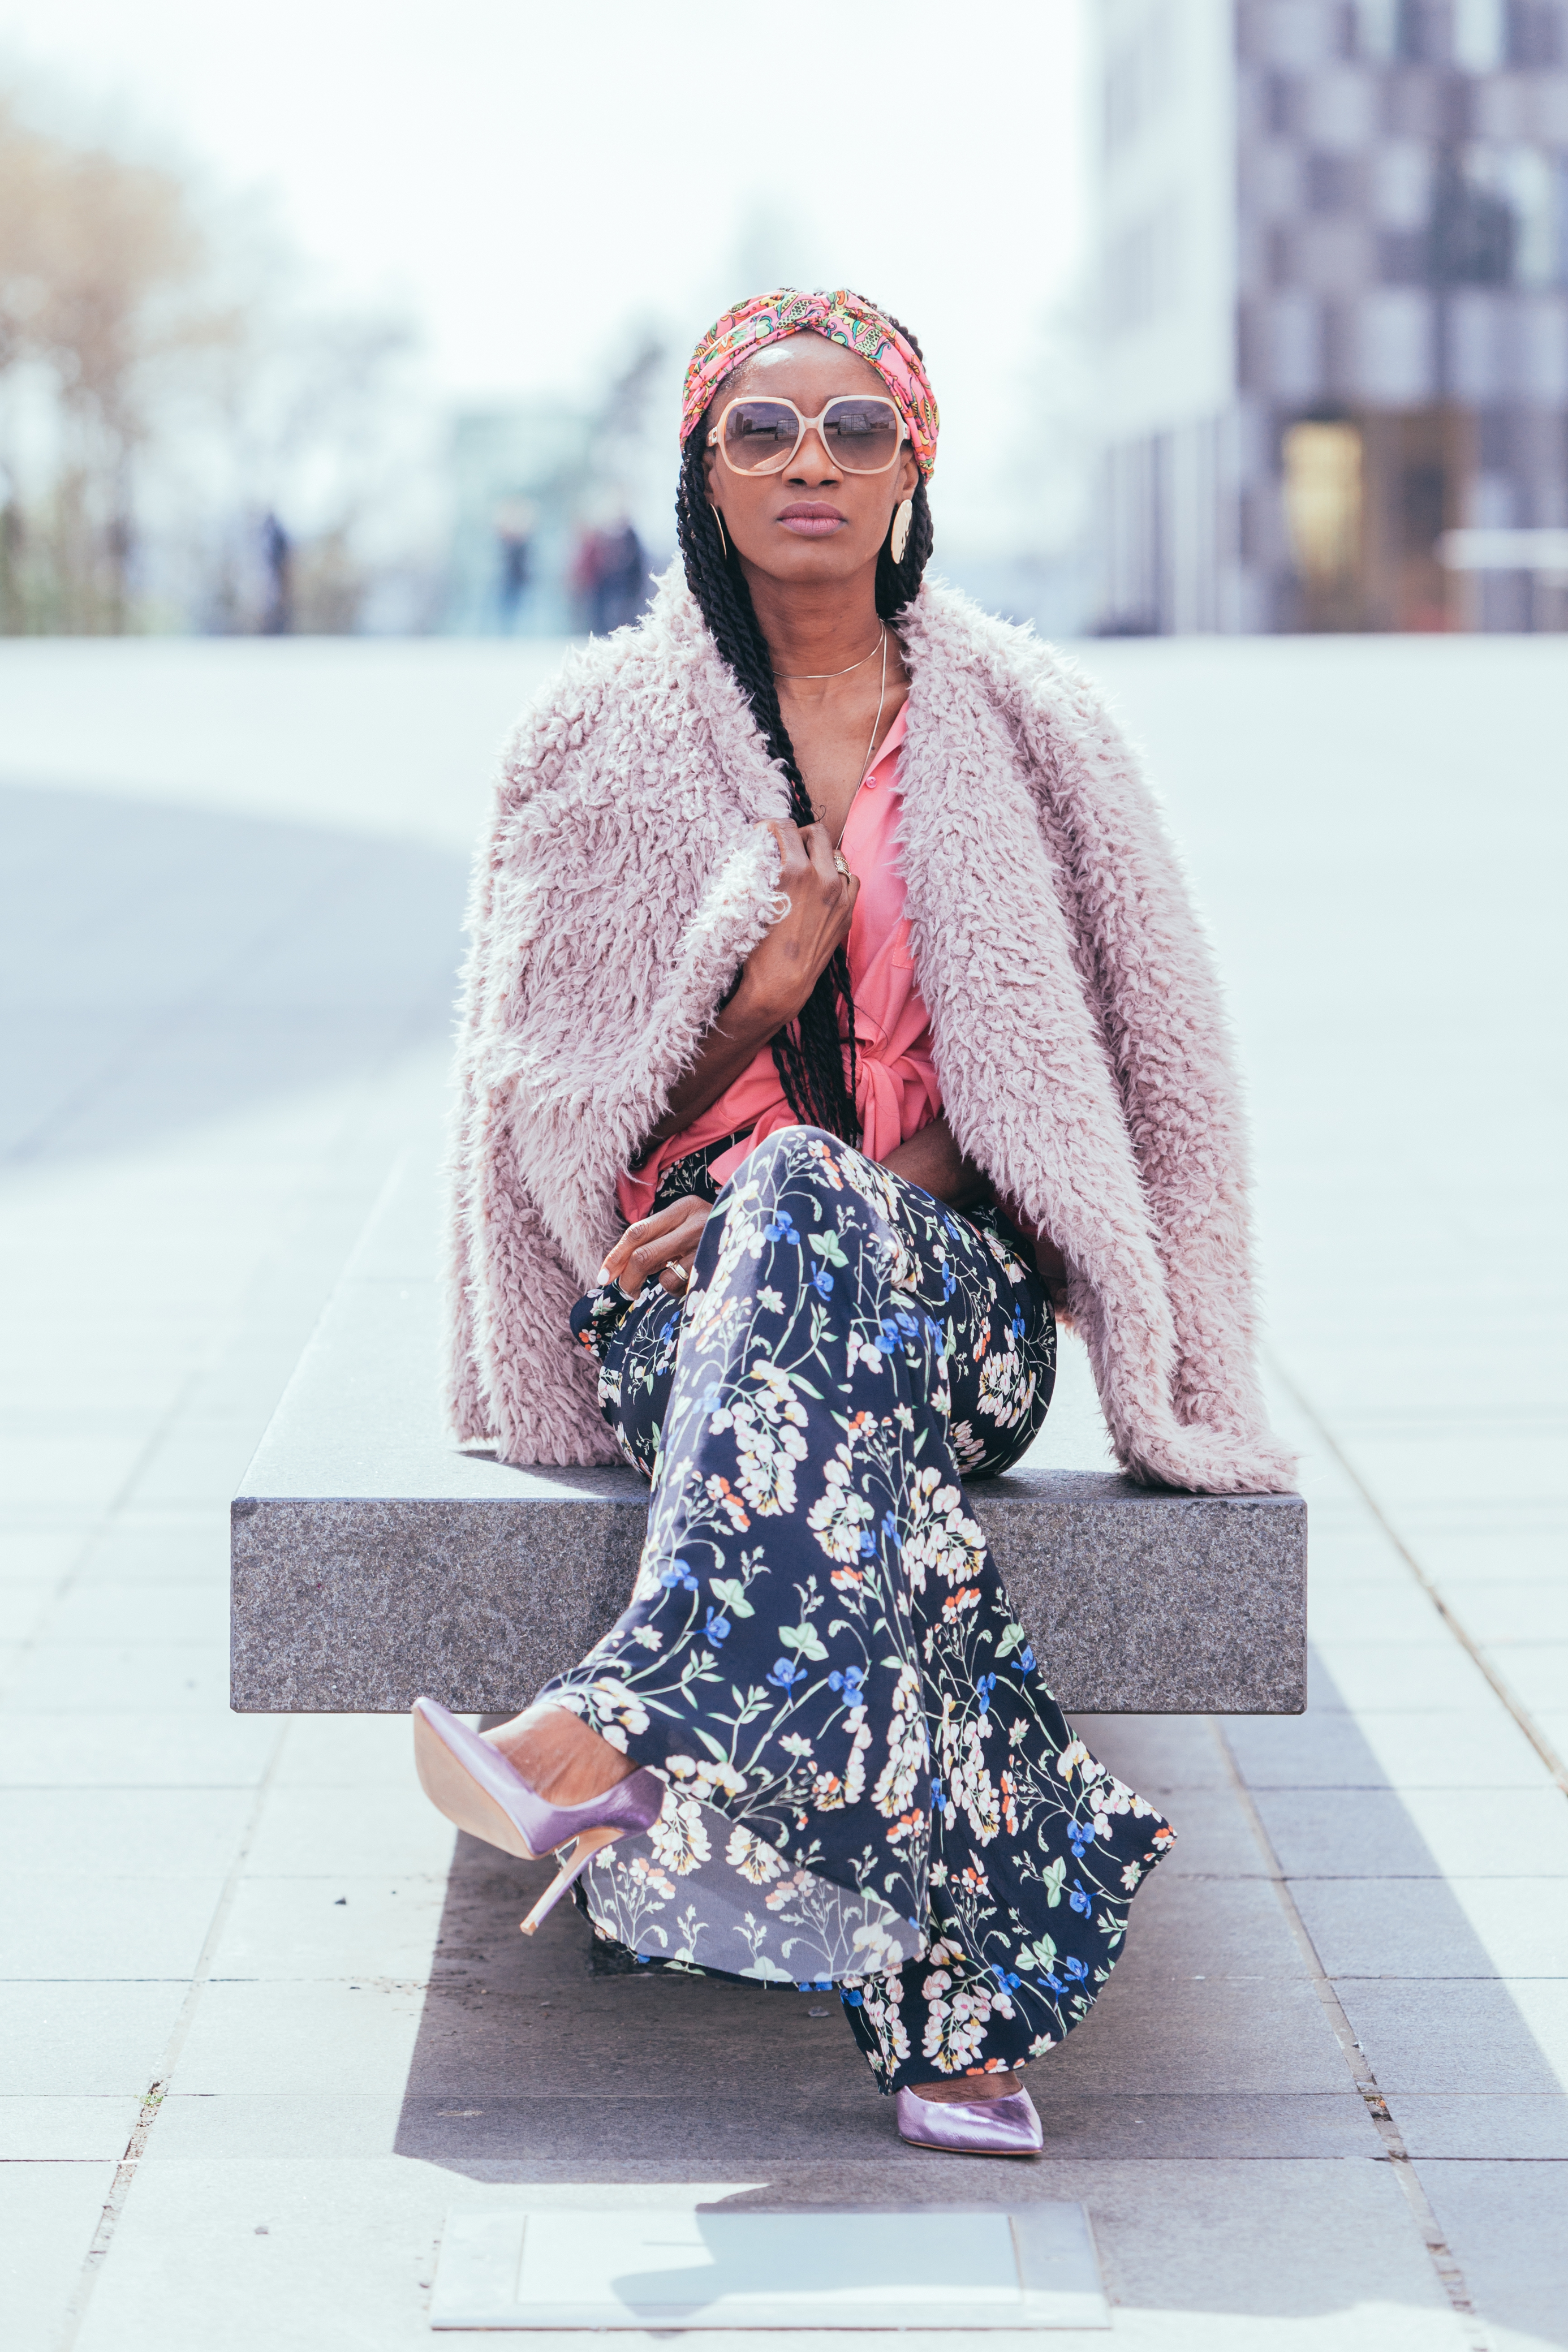 Floral pants spring style